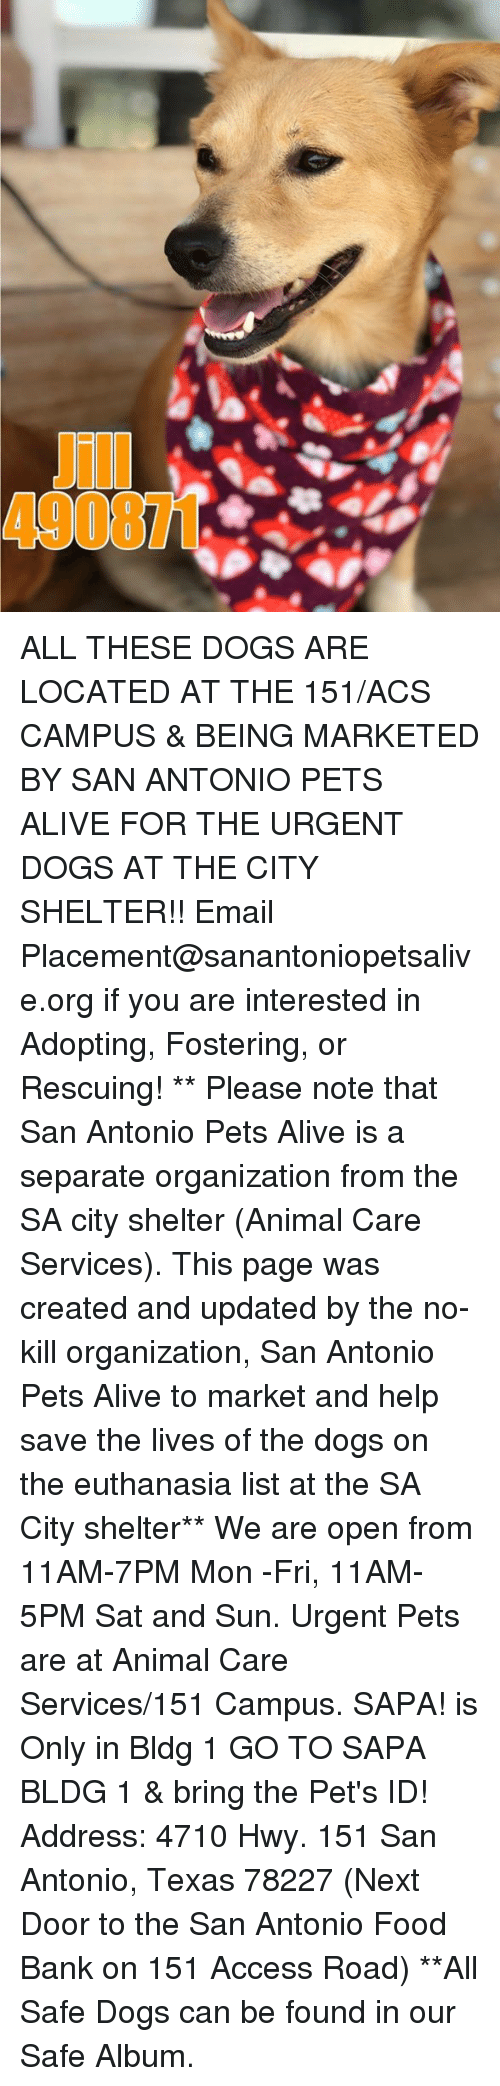 Alive, Dogs, and Food: 490871 ALL THESE DOGS ARE LOCATED AT THE 151/ACS CAMPUS & BEING MARKETED BY SAN ANTONIO PETS ALIVE FOR THE URGENT DOGS AT THE CITY SHELTER!!  Email Placement@sanantoniopetsalive.org if you are interested in Adopting, Fostering, or Rescuing!                                                                                                                                                                                                                                                                                                                                                             ** Please note that San Antonio Pets Alive is a separate organization from the SA city shelter (Animal Care Services). This page was created and updated by the no-kill organization, San Antonio Pets Alive to market and help save the lives of the dogs on the euthanasia list at the SA City shelter**  We are open from 11AM-7PM Mon -Fri, 11AM-5PM Sat and Sun. Urgent Pets are at Animal Care Services/151 Campus. SAPA! is Only in Bldg 1 GO TO SAPA BLDG 1 & bring the Pet's ID! Address: 4710 Hwy. 151 San Antonio, Texas 78227 (Next Door to the San Antonio Food Bank on 151 Access Road) **All Safe Dogs can be found in our Safe Album.